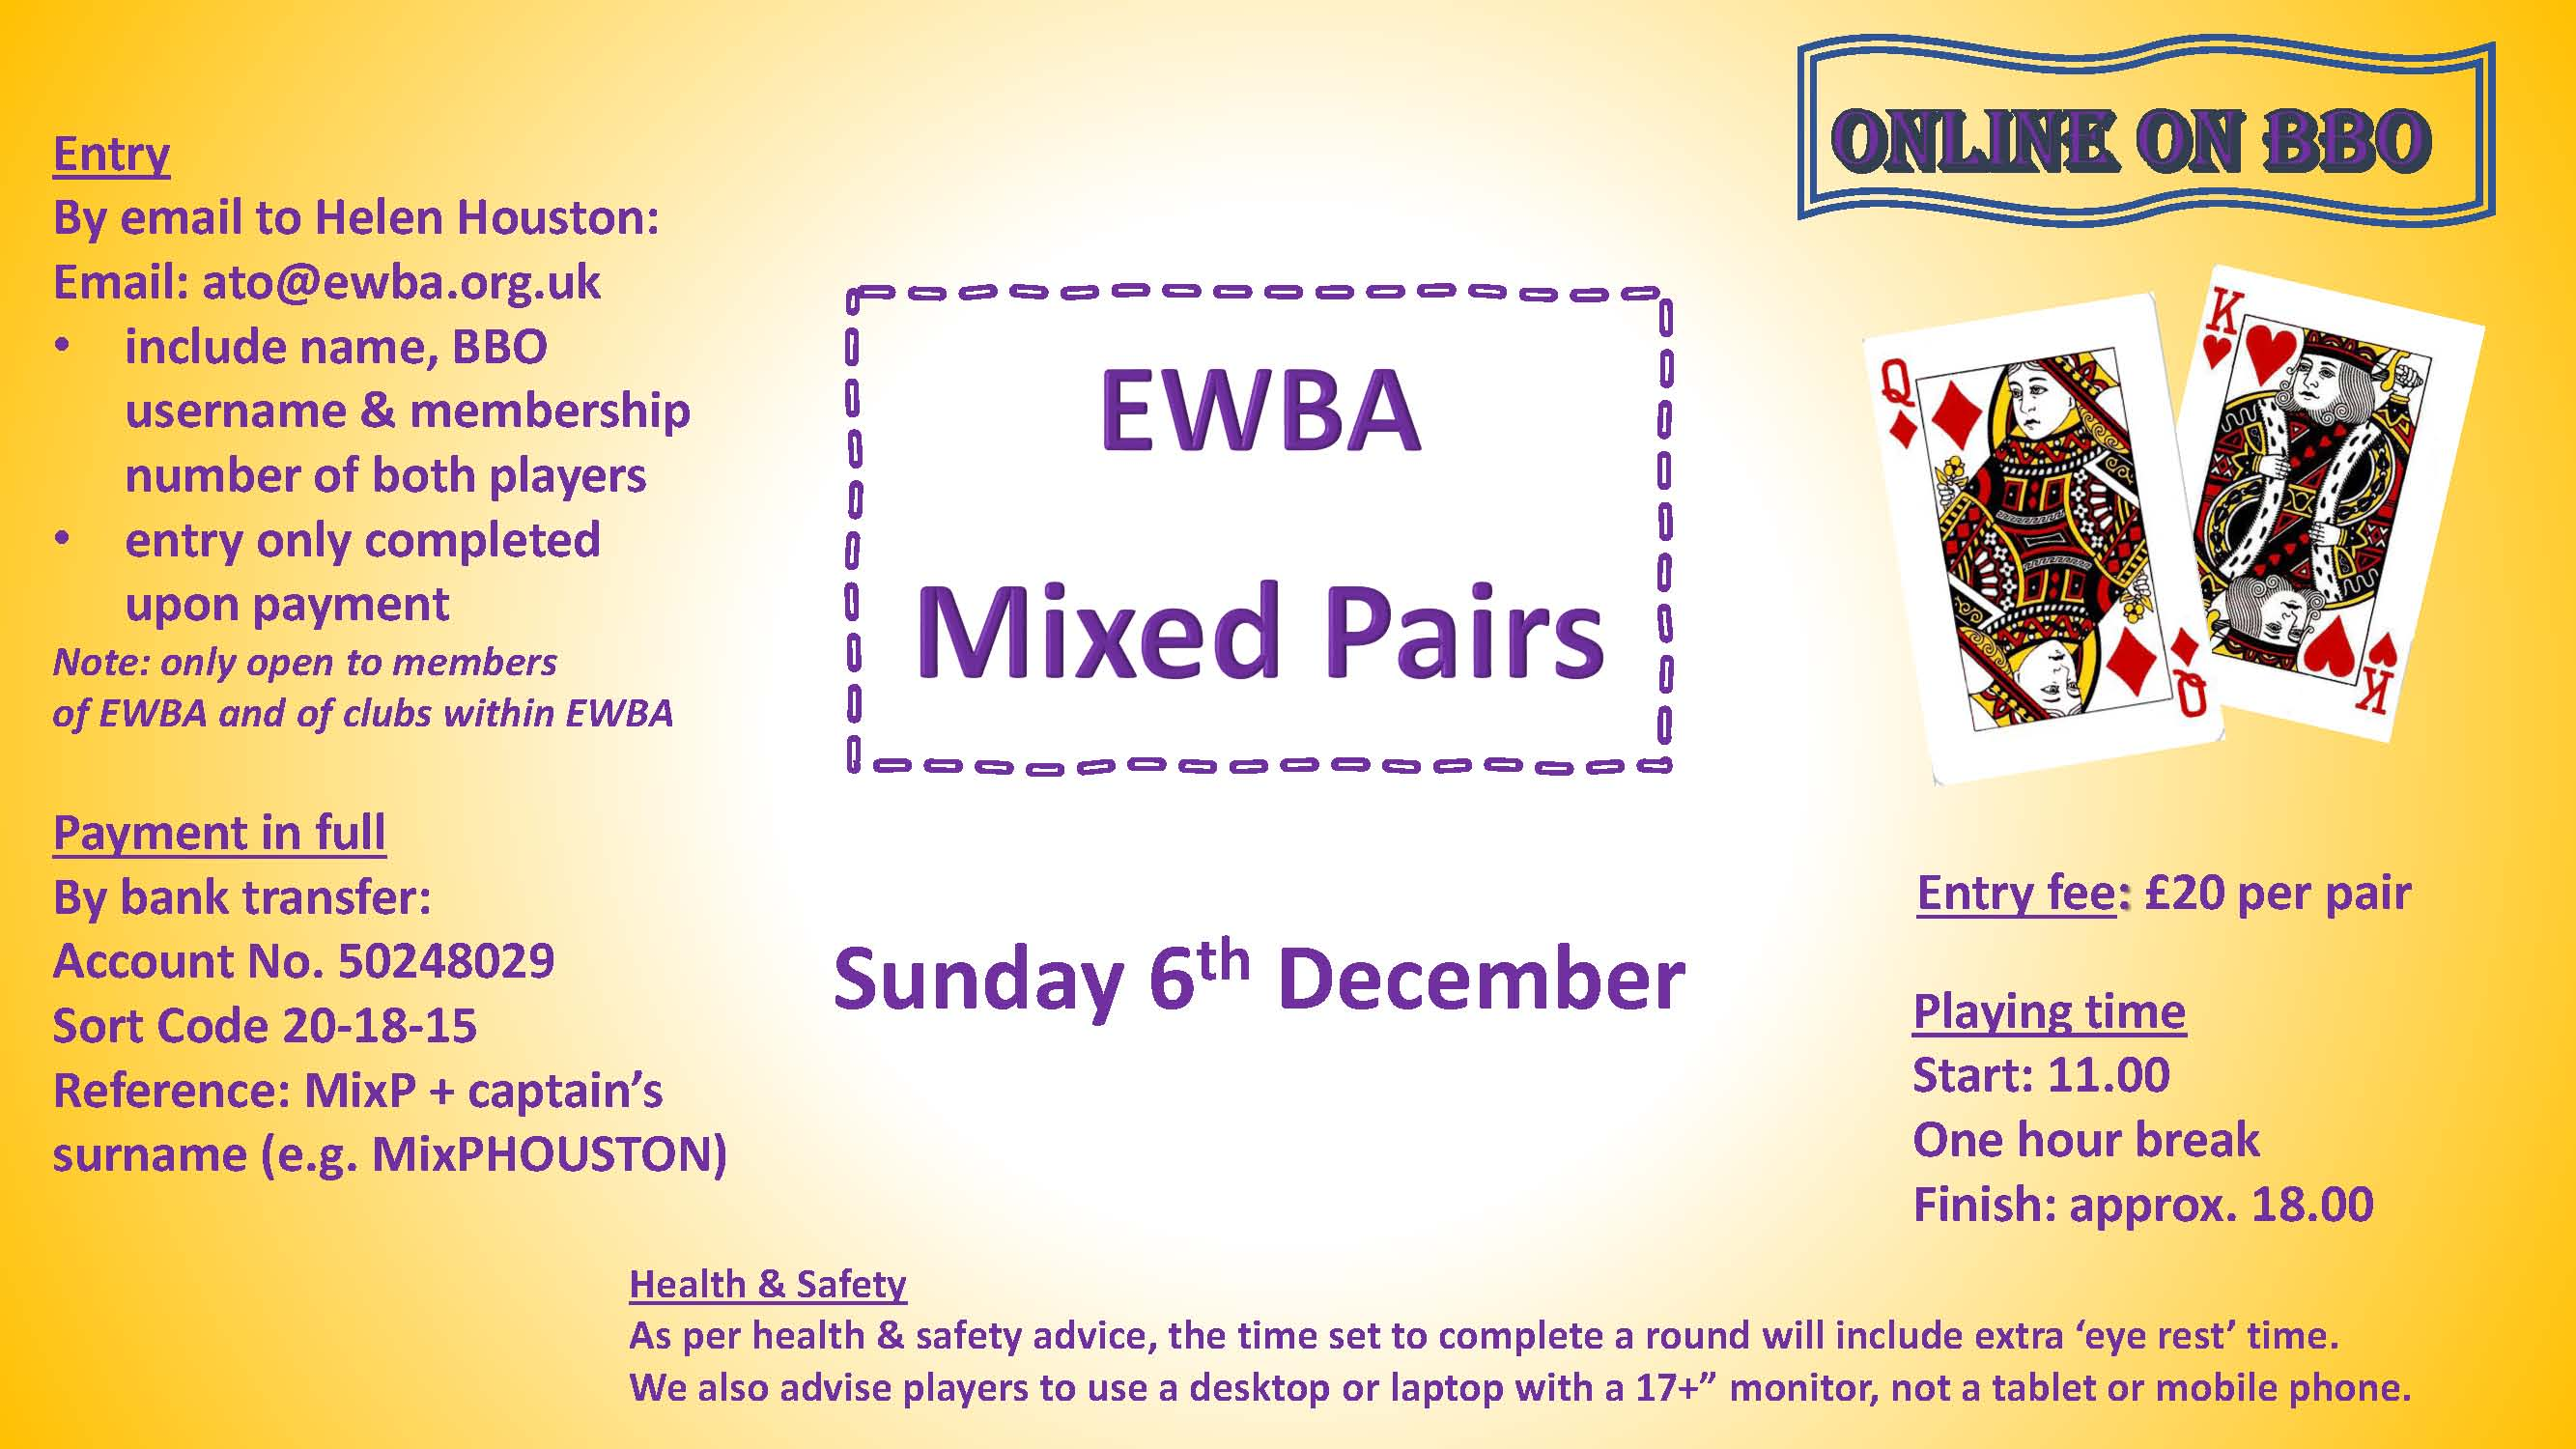 EWBA Mixed Pairs (Closed) @ BBO